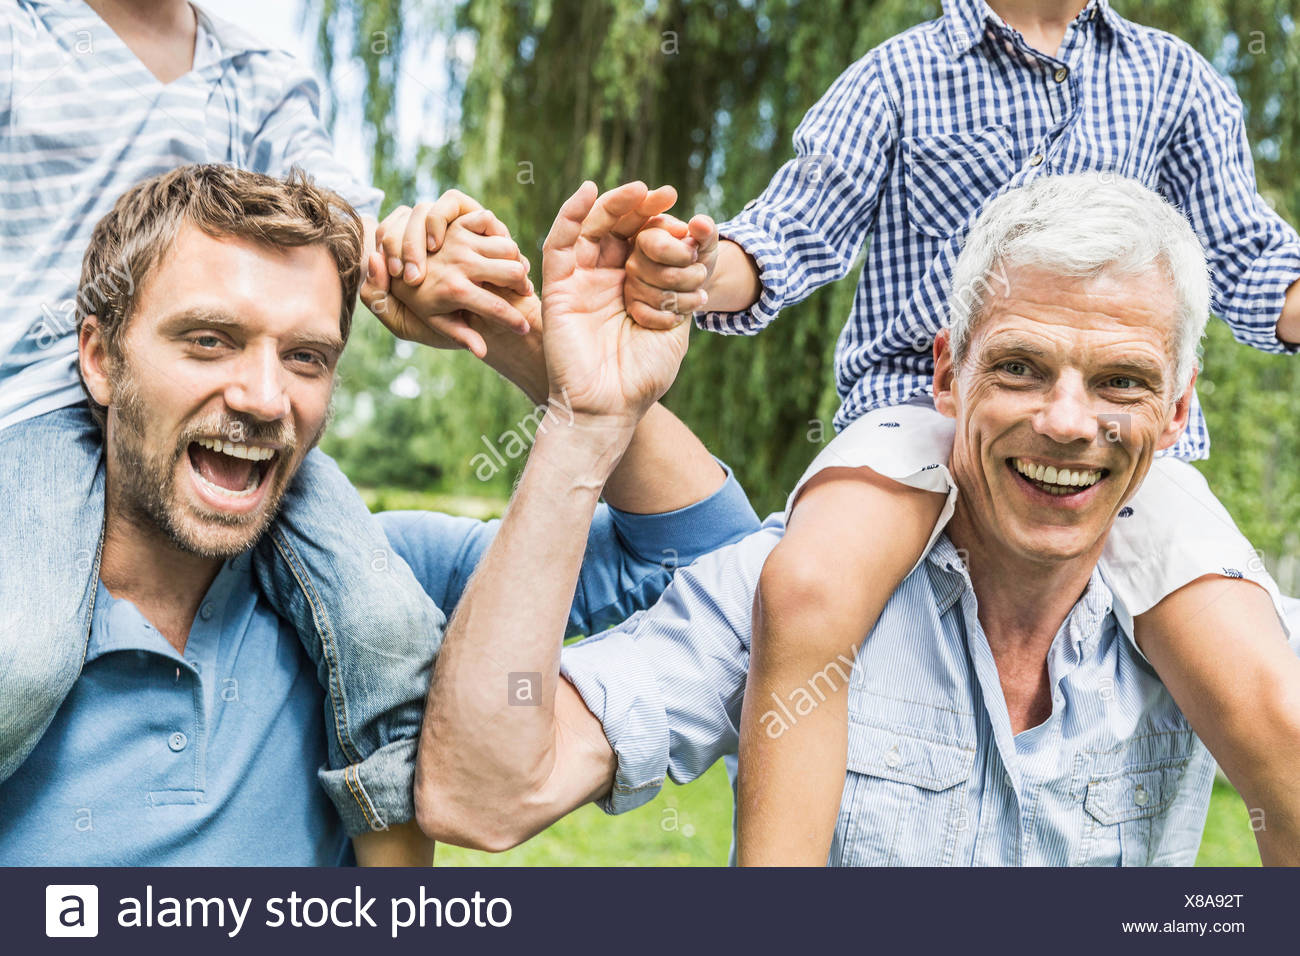 Mid adult man with father giving sons shoulder carry race in garden - Stock Image